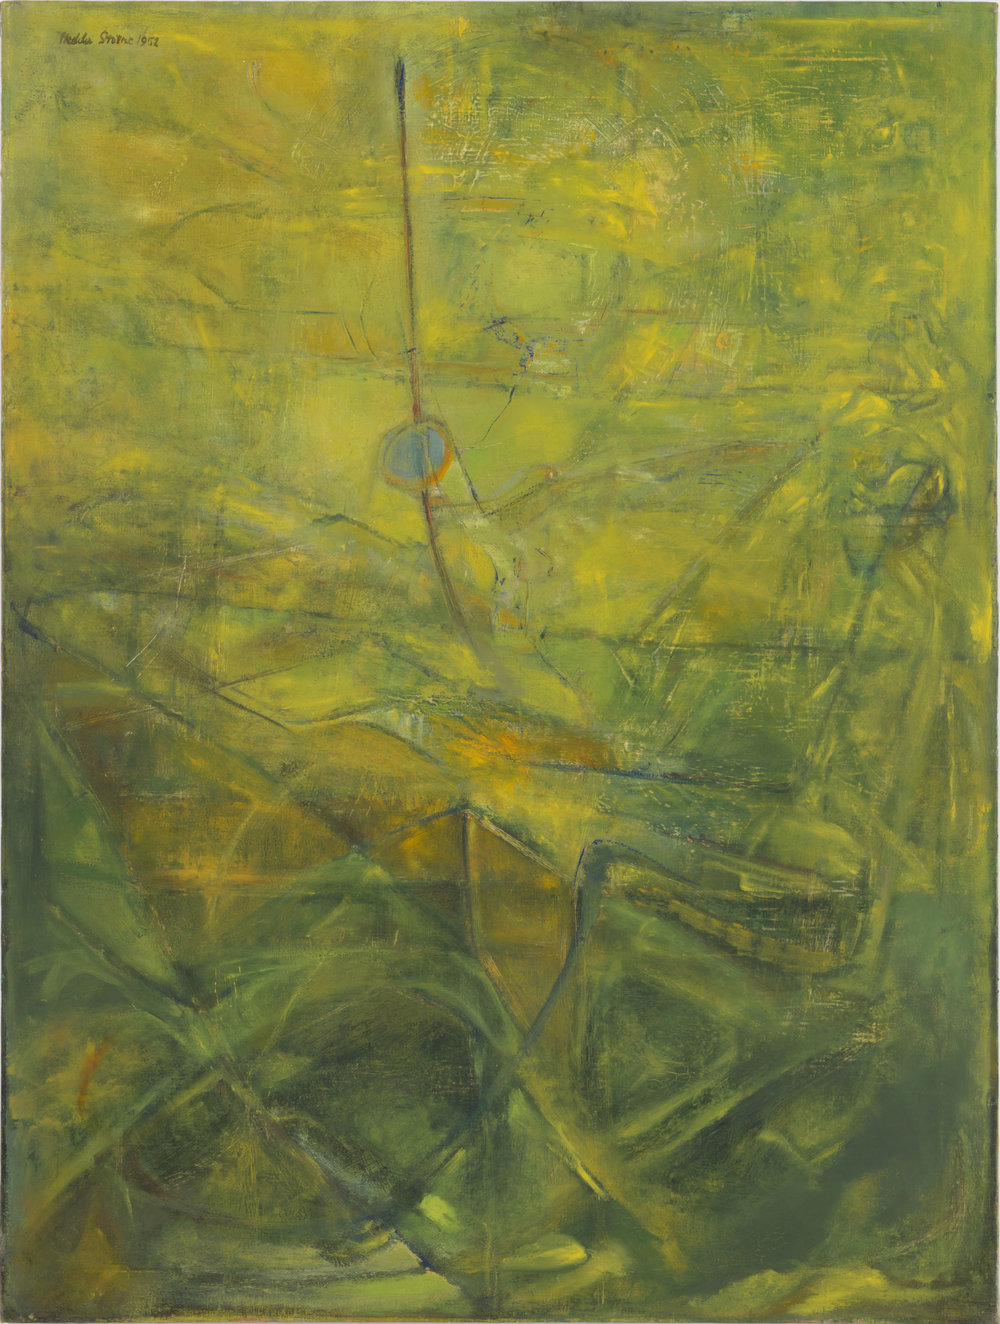 Hedda Sterne,  Green Landscape No. 2 , 1952, Oil on canvas, 40 in. x 30 in.